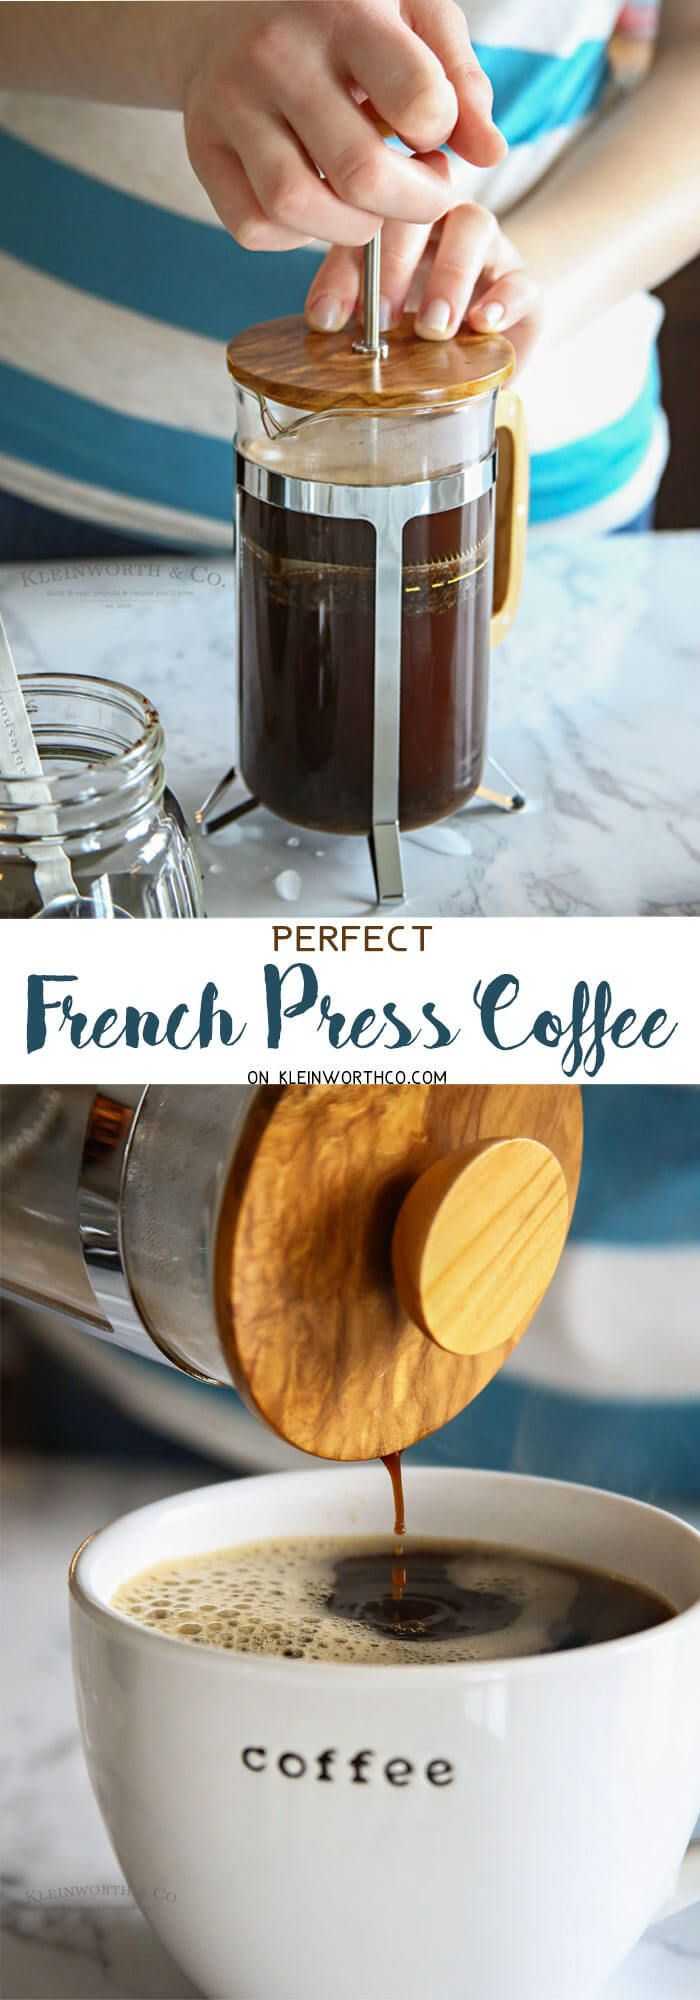 Perfect French Press Coffee is simple & easy to make. This step-by-step tutorial with helpful tips & tricks for an amazing brew! via @KleinworthCo